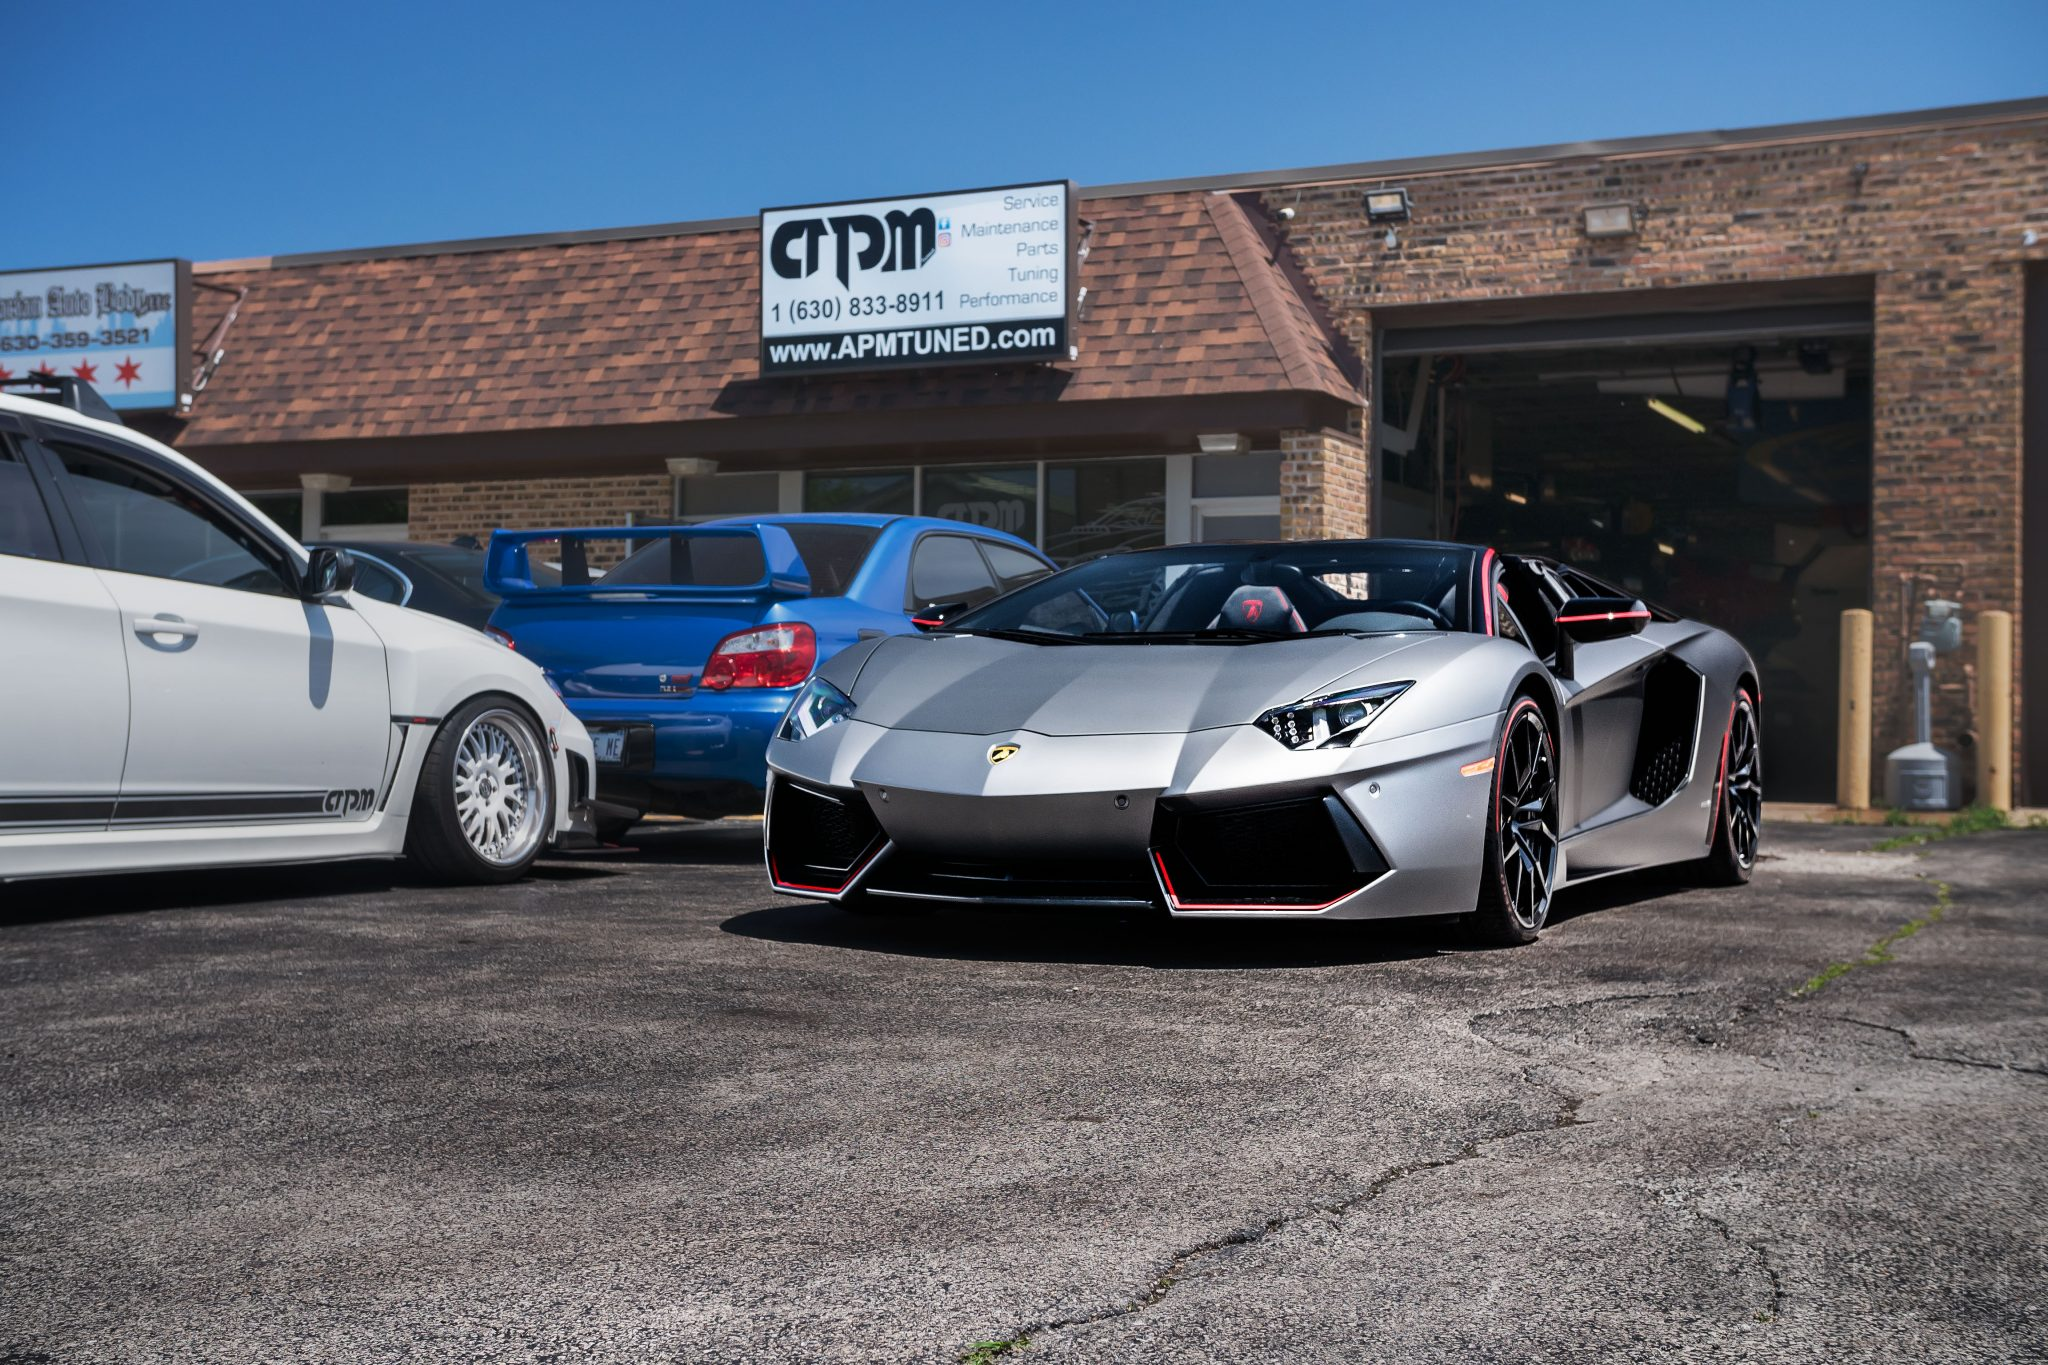 Lamborghini 2016 Aventador LP700 outside of our Villa Park location